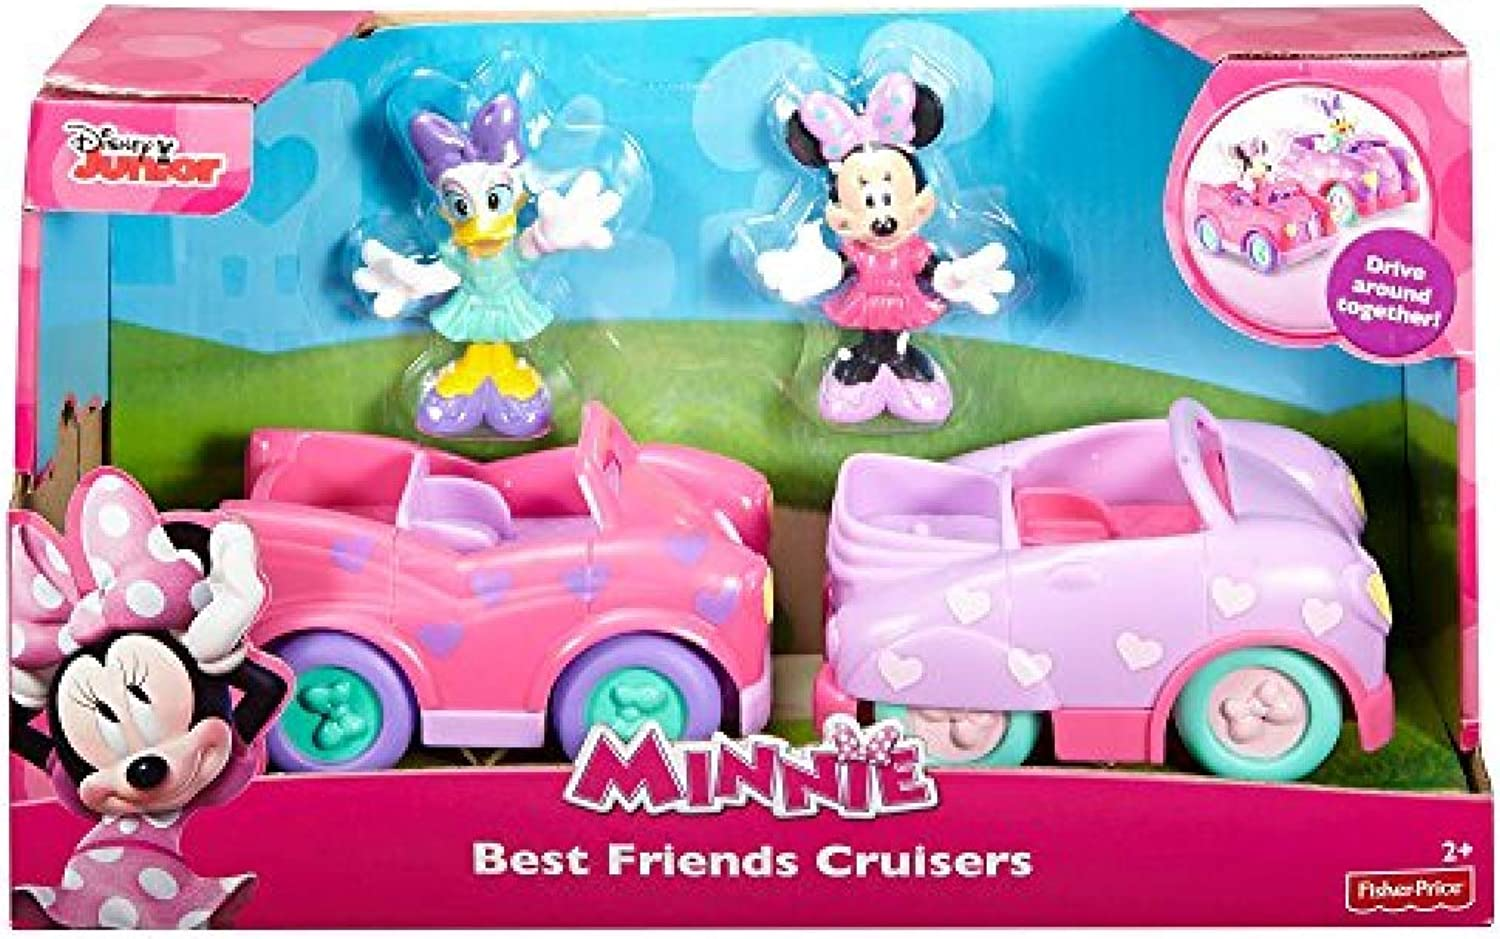 FisherPrice Disney Minnie Mouse Best Friends Cruisers Doll